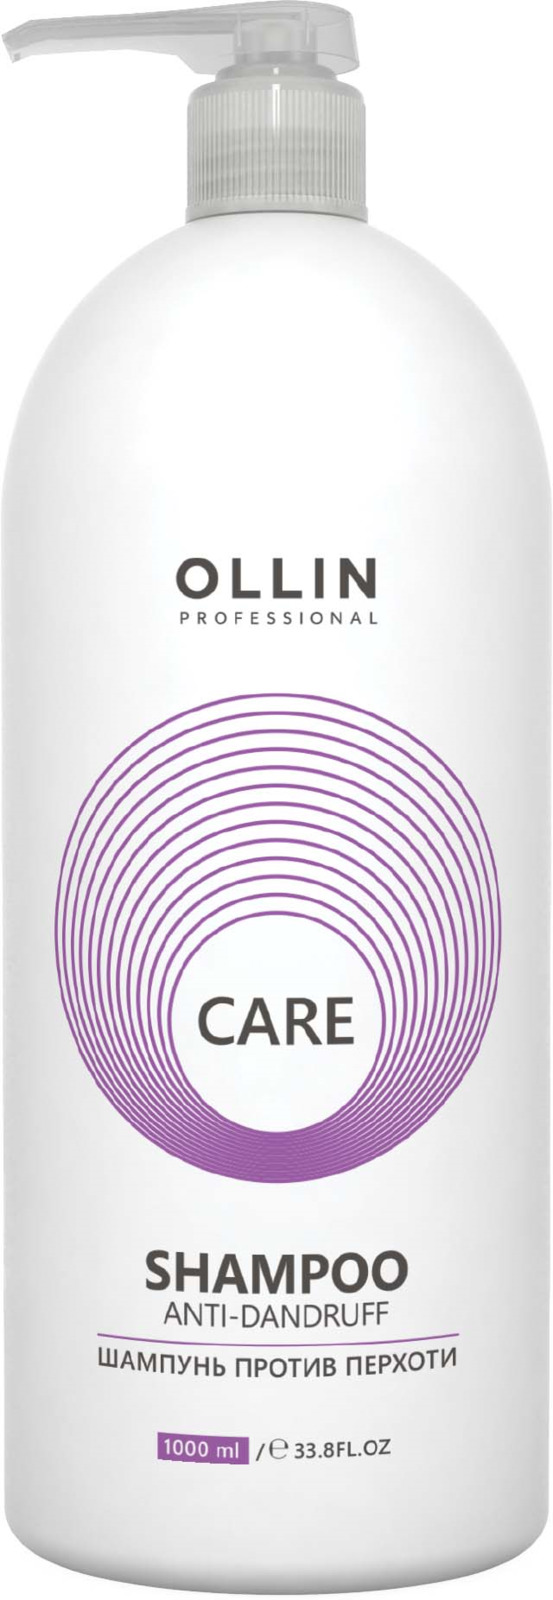 Ollin Шампунь против перхоти Care Anti-Dandruff Shampoo 1000 мл ollin шампунь против перхоти care anti dandruff shampoo 250 мл